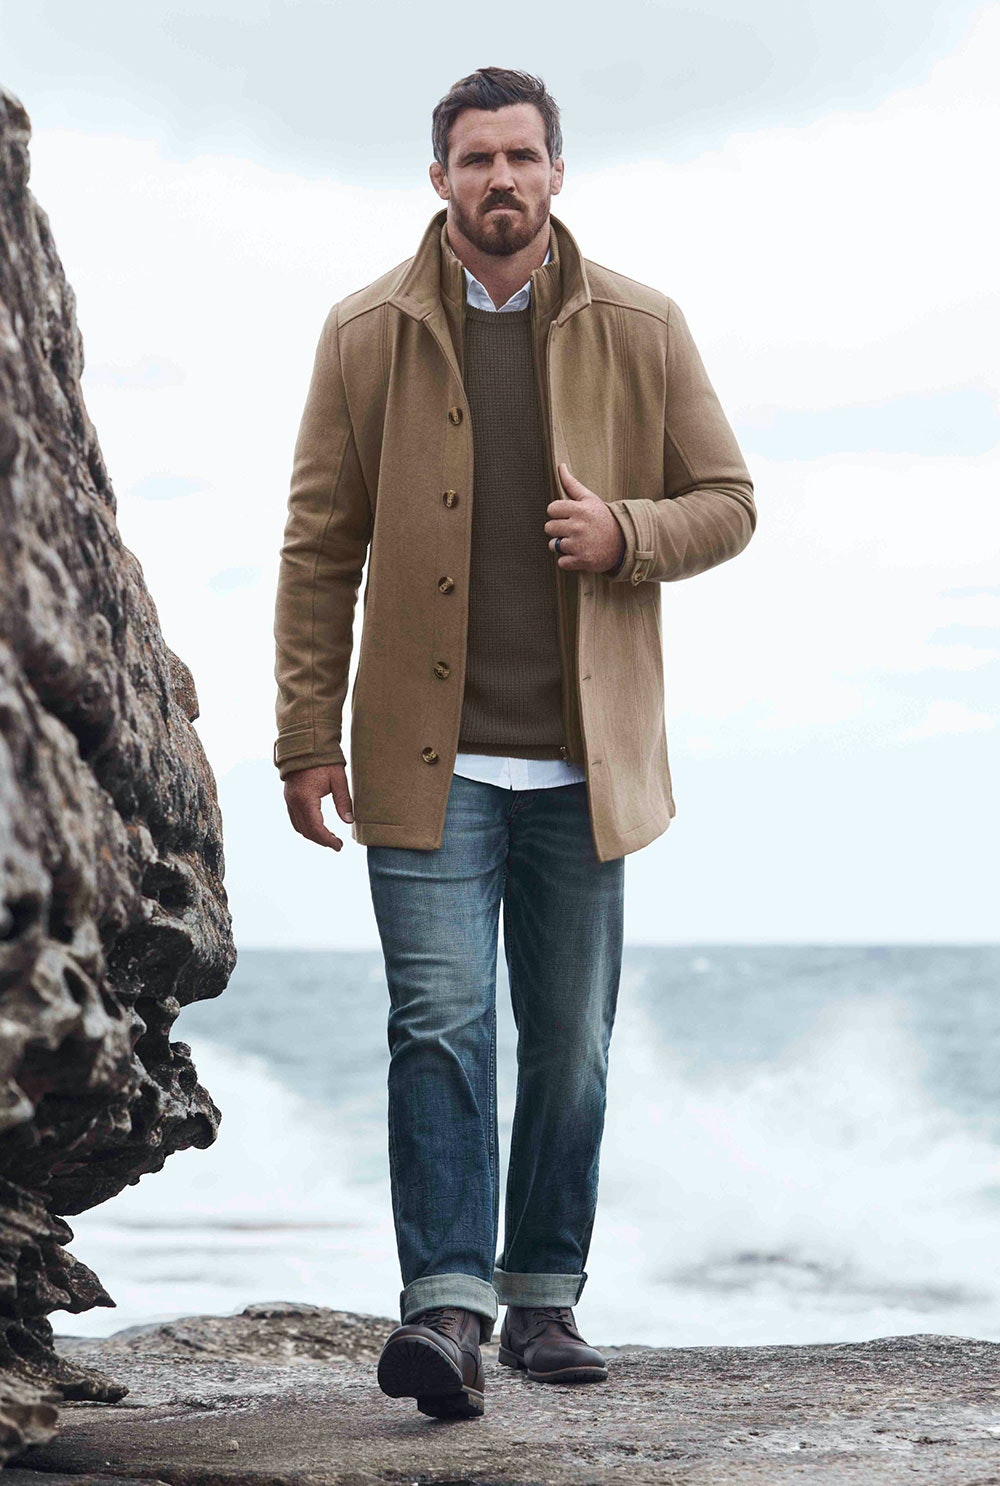 A little about our Johnny Bigg stores and the big and tall menswear range we stock.